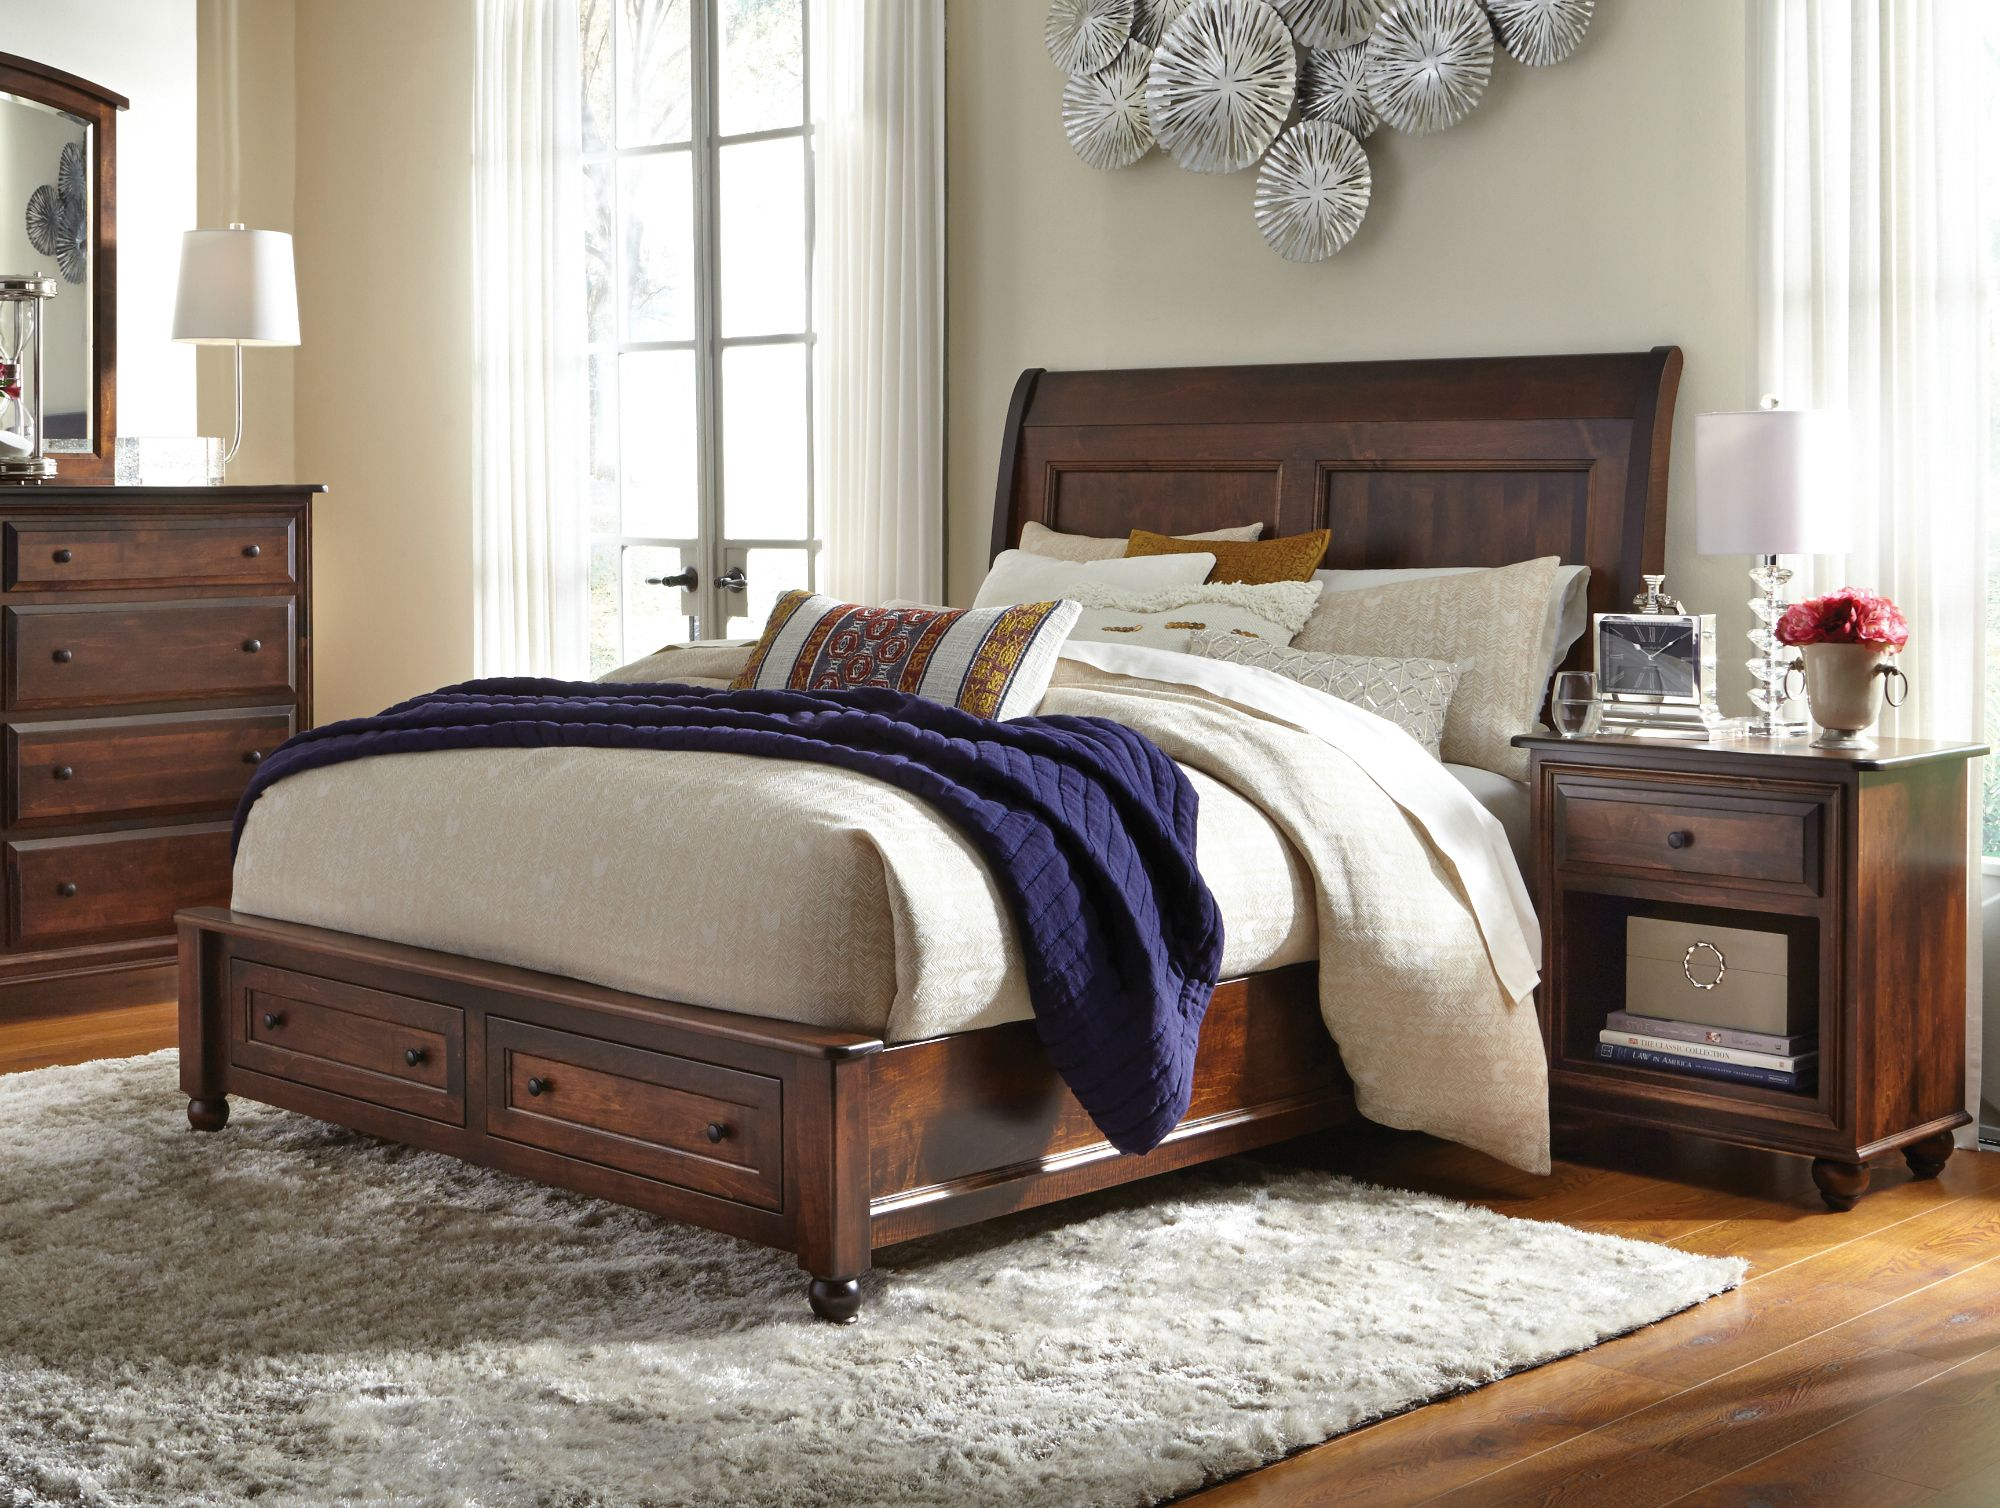 Charlton Queen Storage Bed in 2019 King storage bed, Bed